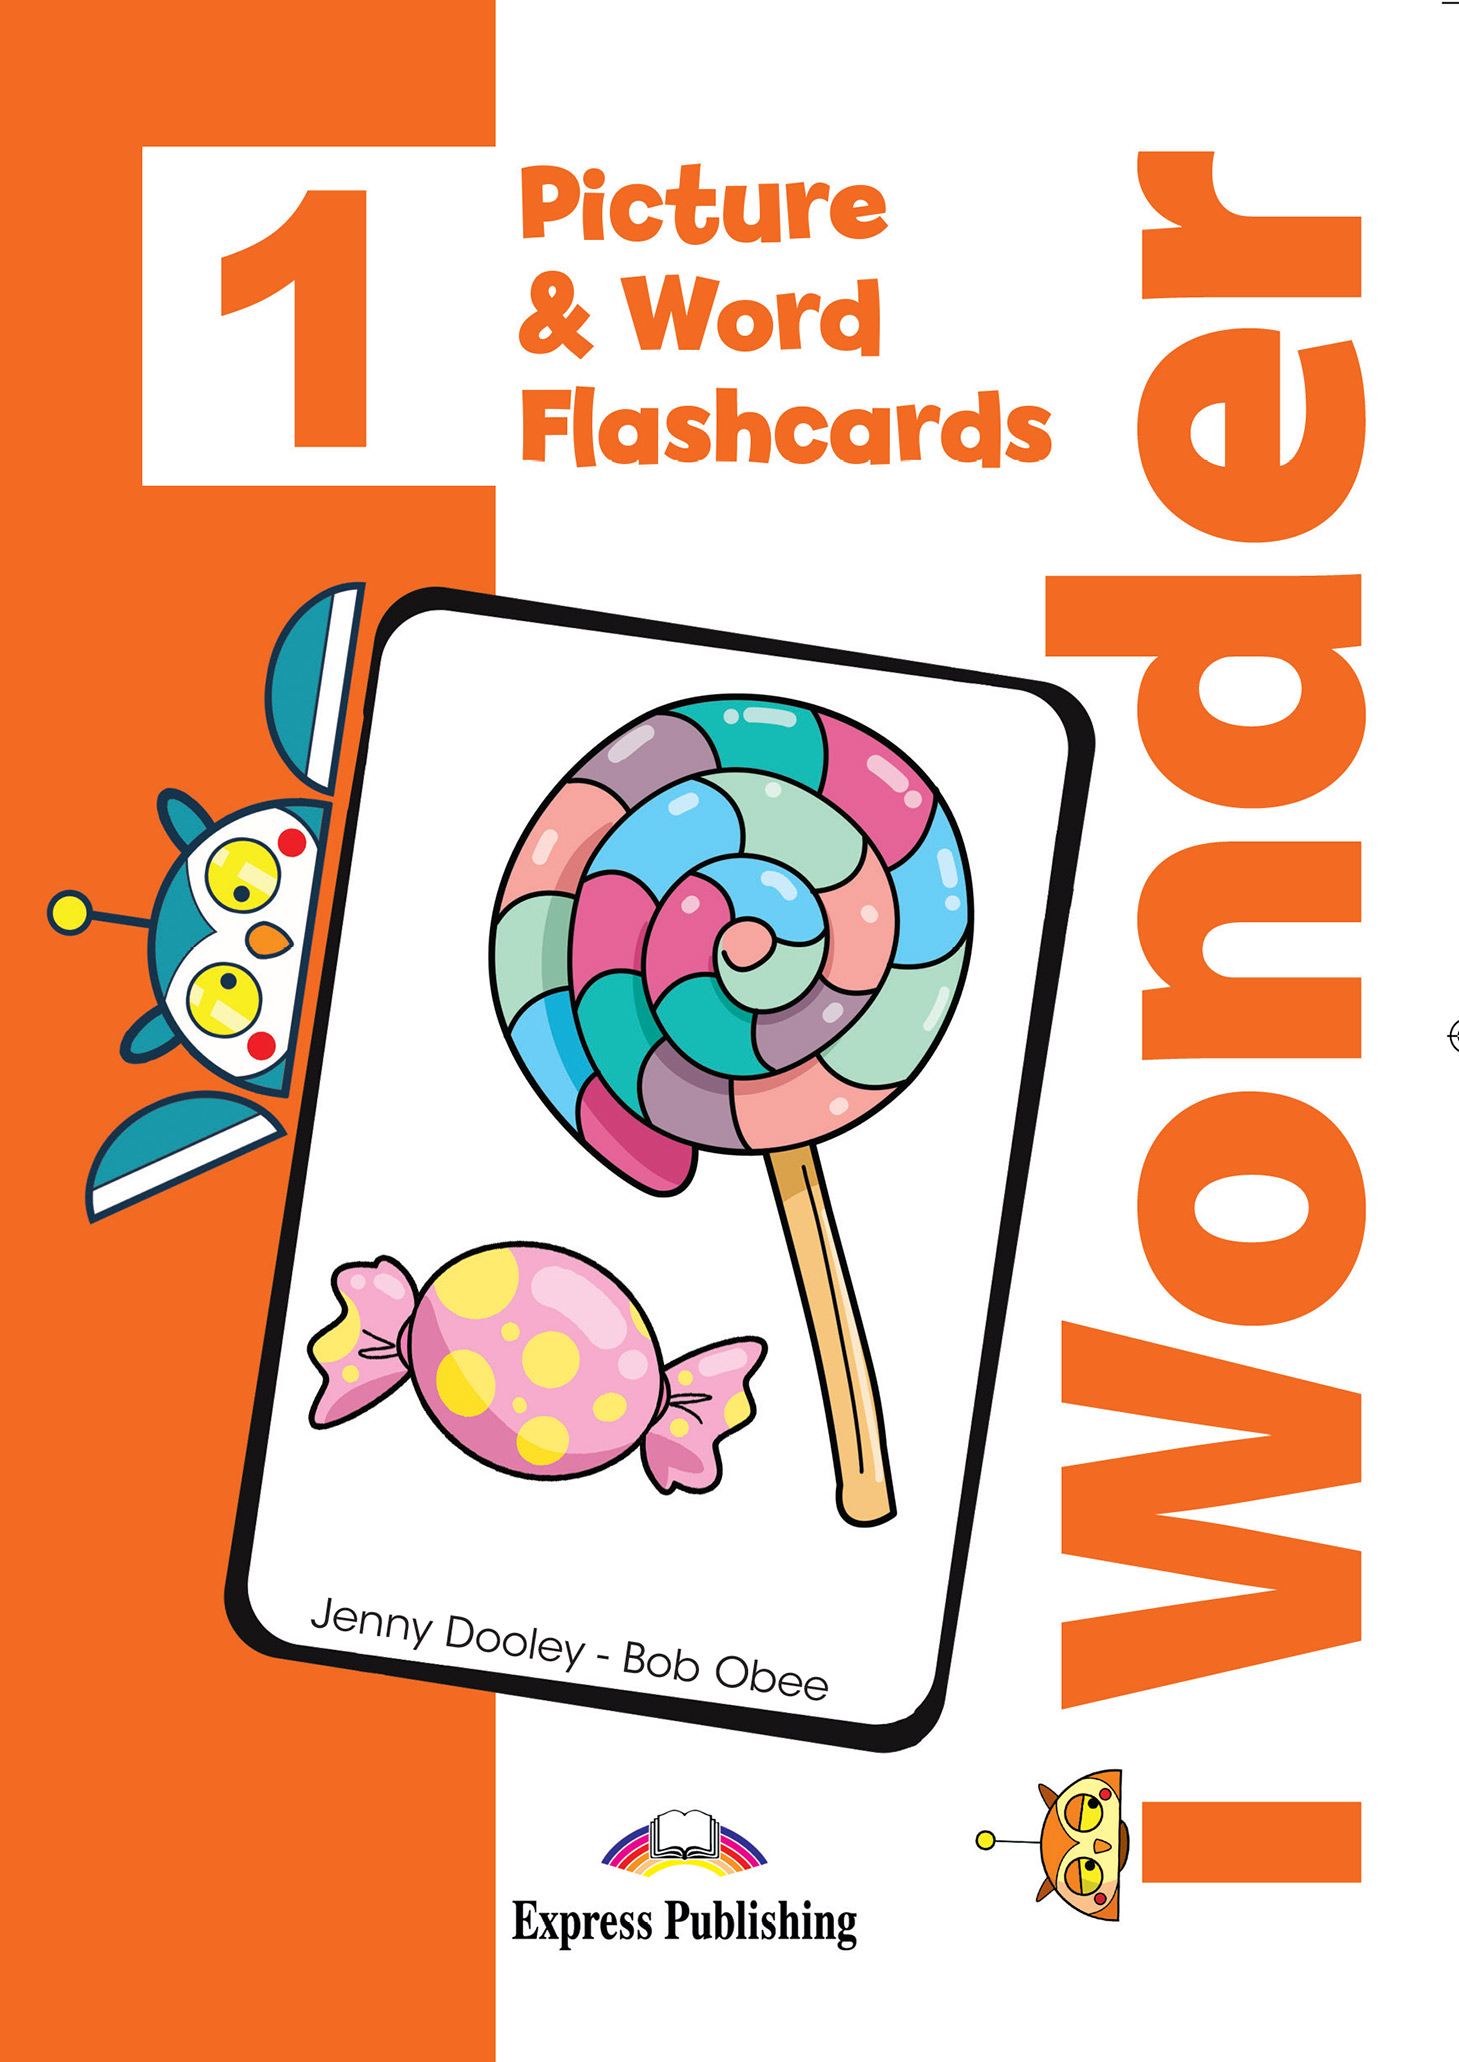 i-Wonder 1 - Picture & word flashcards